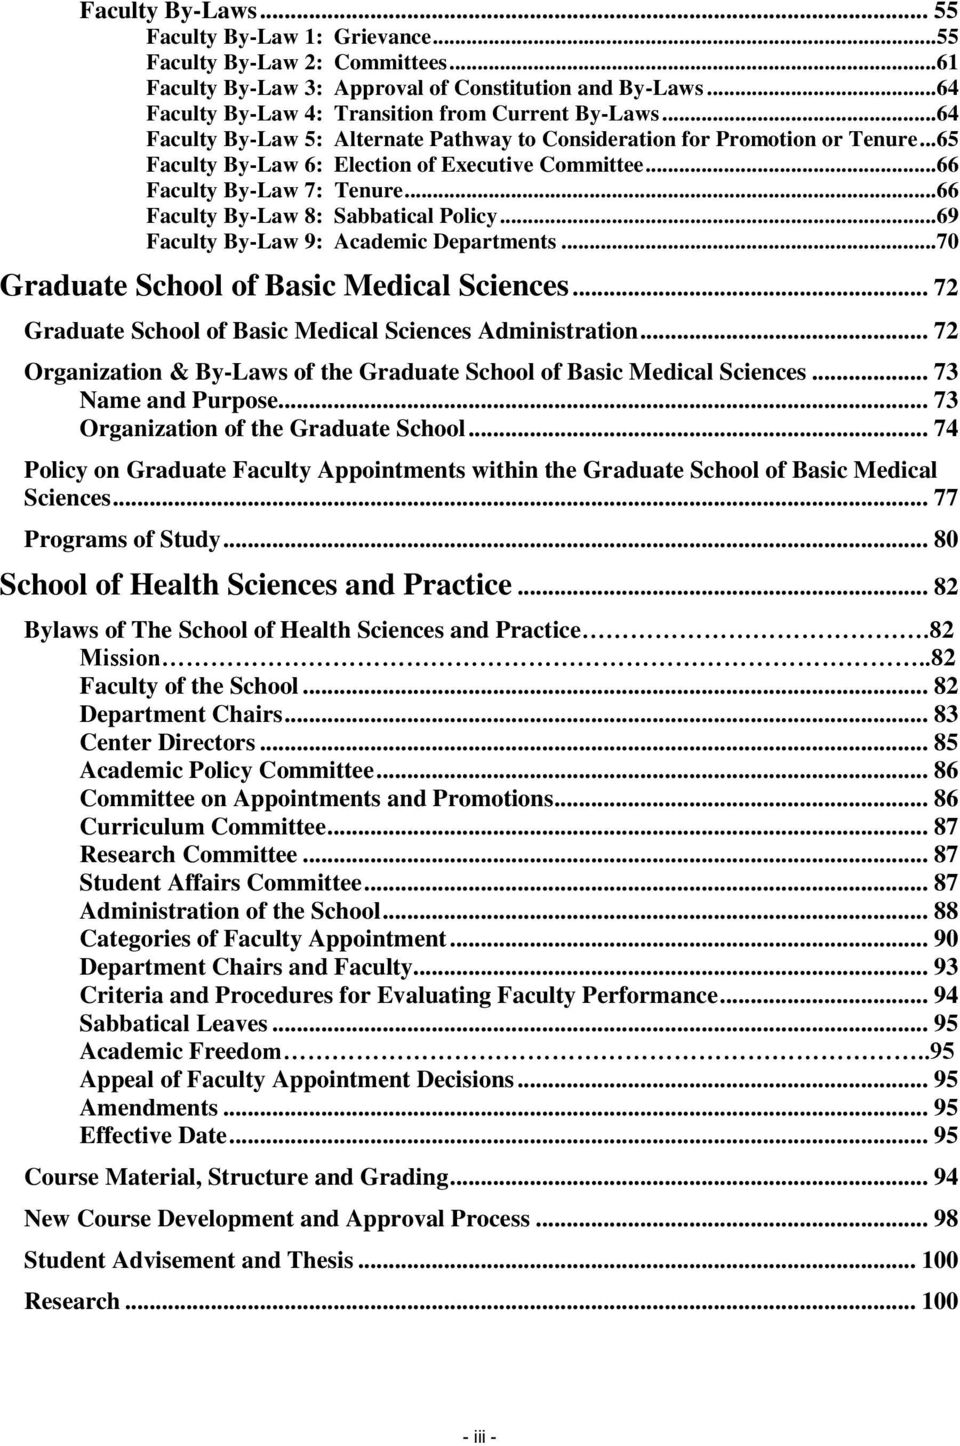 ..66 Faculty By-Law 8: Sabbatical Policy...69 Faculty By-Law 9: Academic Departments...70 Graduate School of Basic Medical Sciences... 72 Graduate School of Basic Medical Sciences Administration.